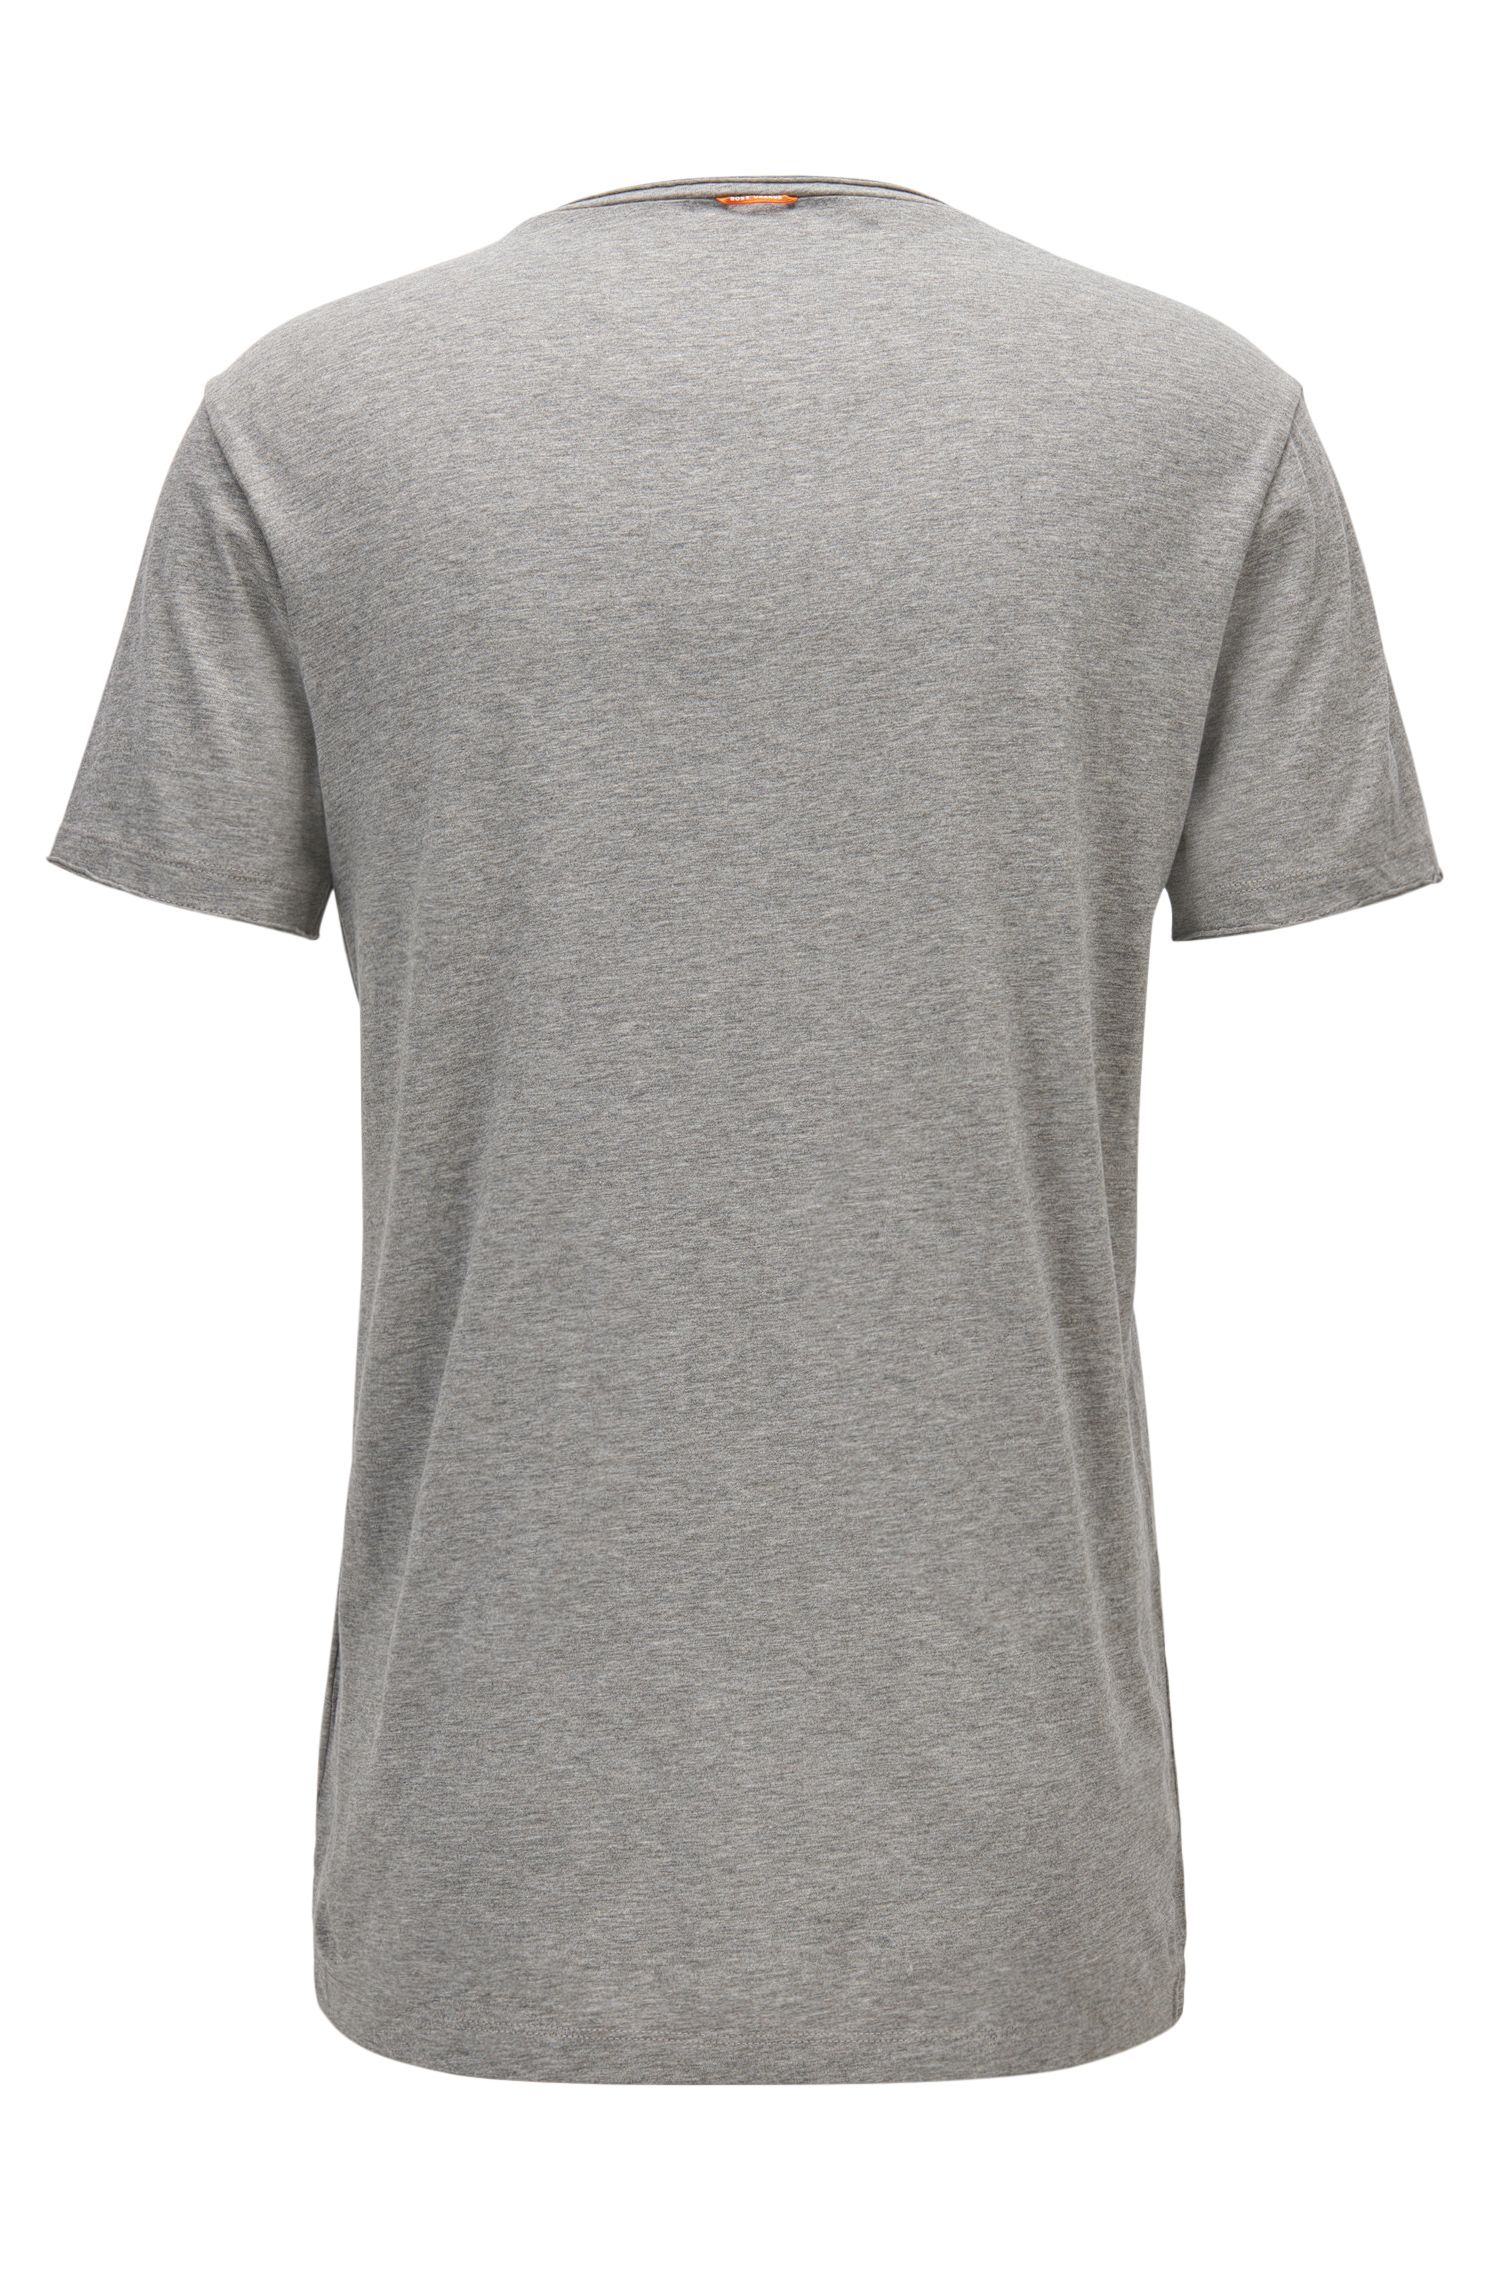 Regular-fit T-shirt with raw-cut detail, Grey